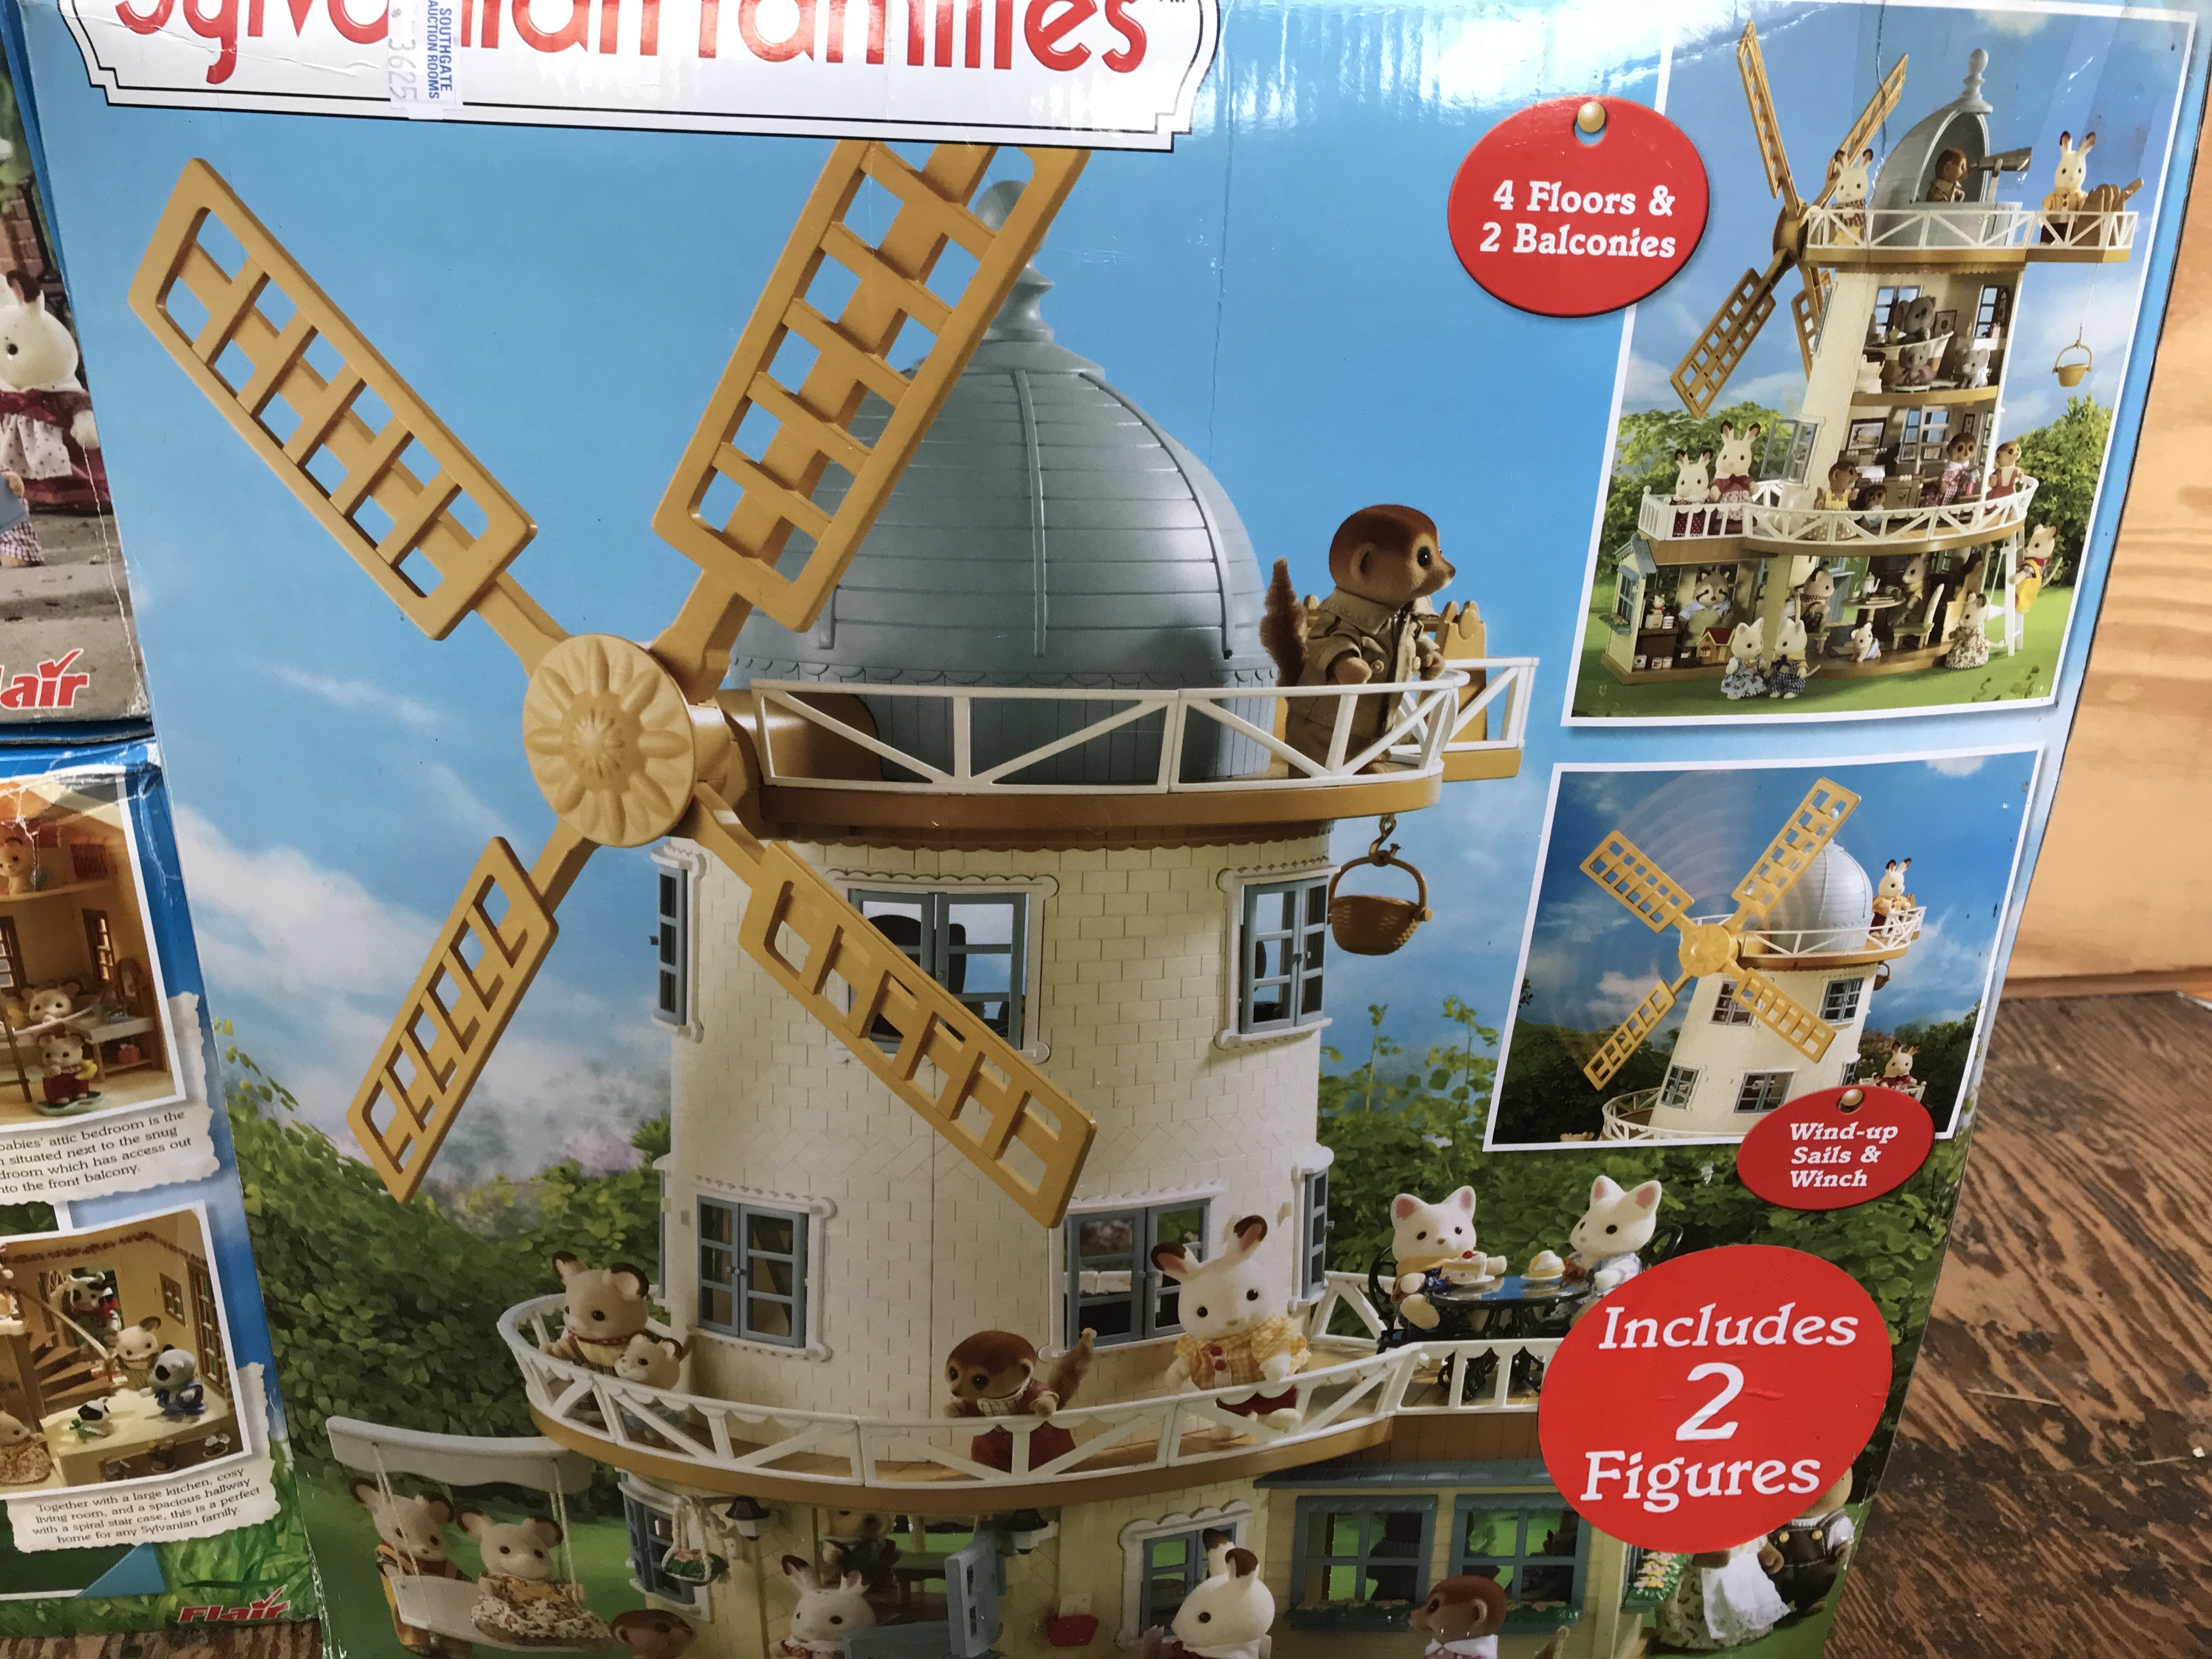 3 X Boxed Sylvanian Families Boxed PlaySets, inclu - Image 2 of 4